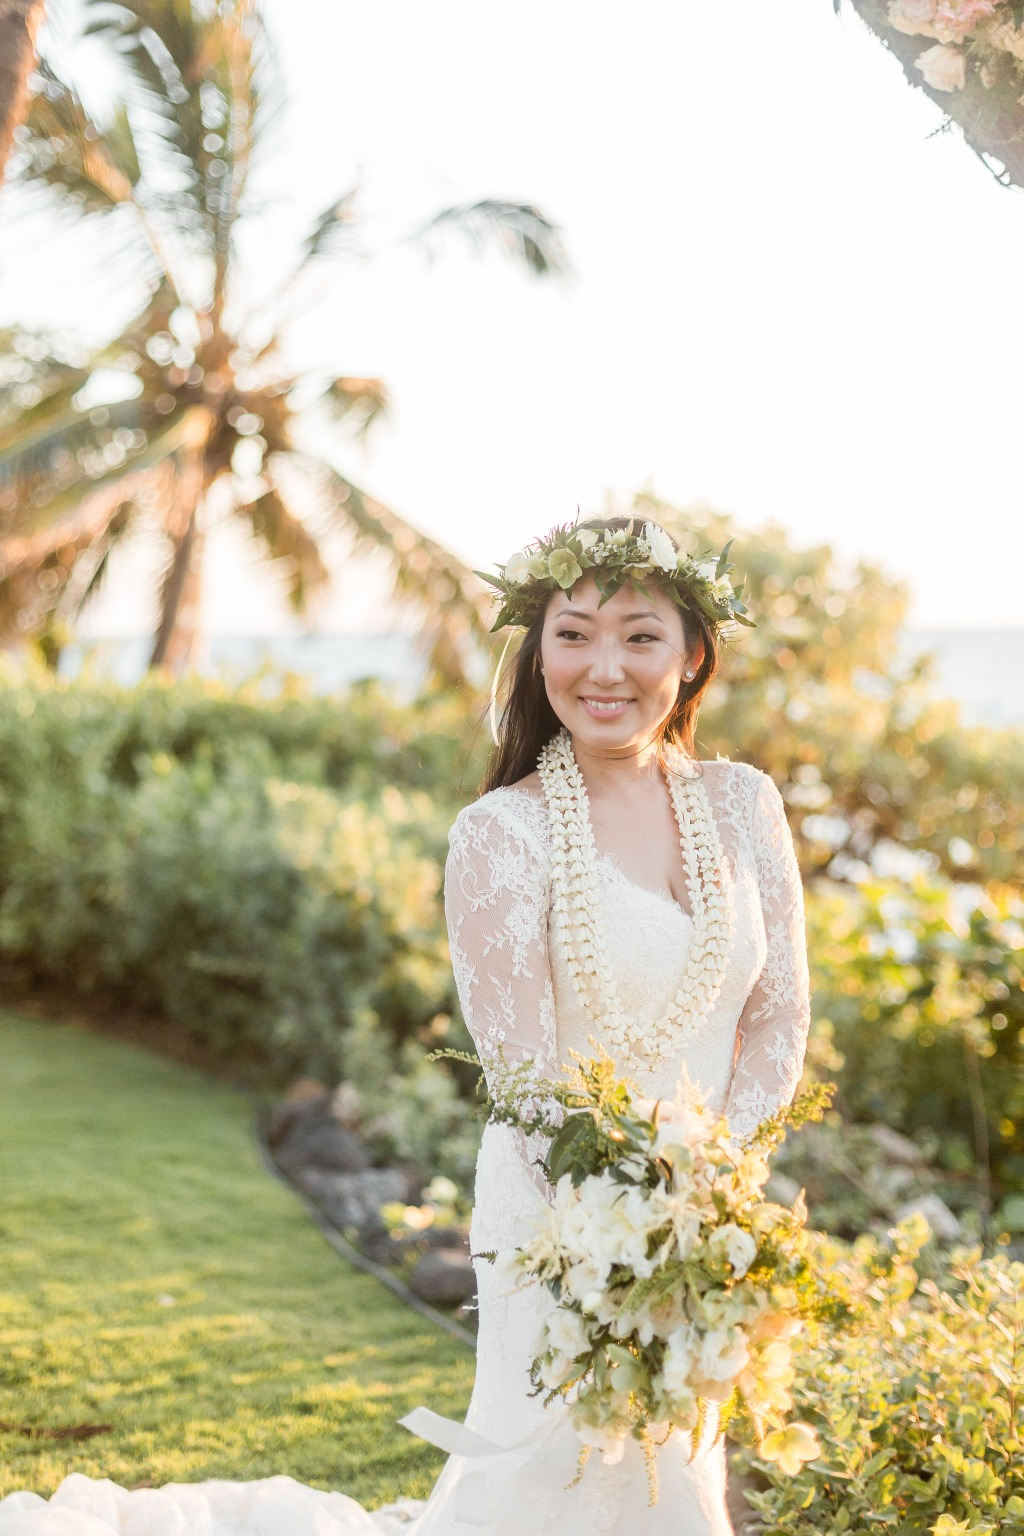 Maui Wedding Photographer | Maui Weddings | Tropical Chic Hawaiian Wedding on Maui, Hawaii by Caitlin Cathey Photography | Maui Wedding